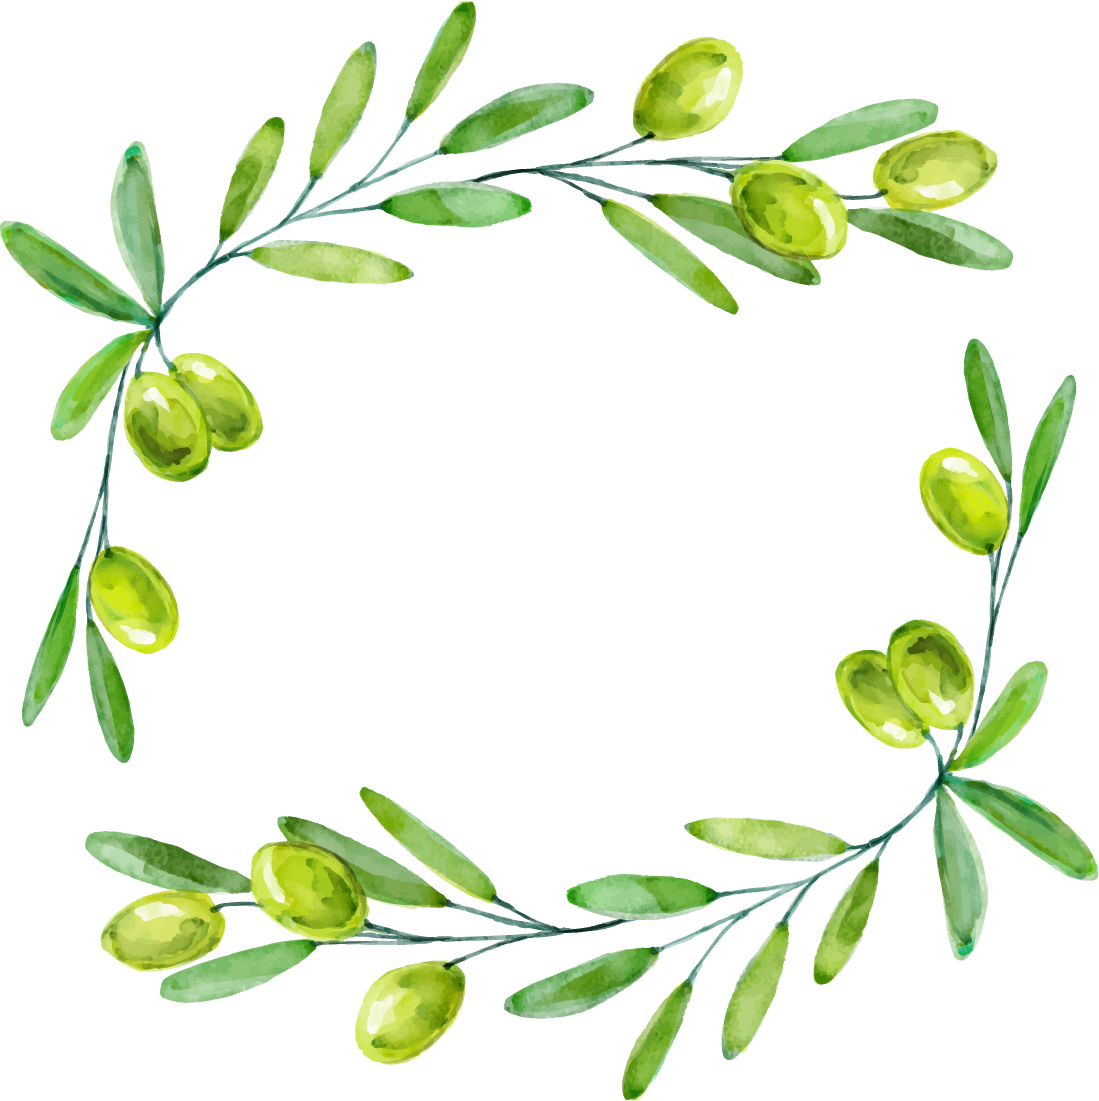 Watercolor olive branch png. Euclidean vector drawing green